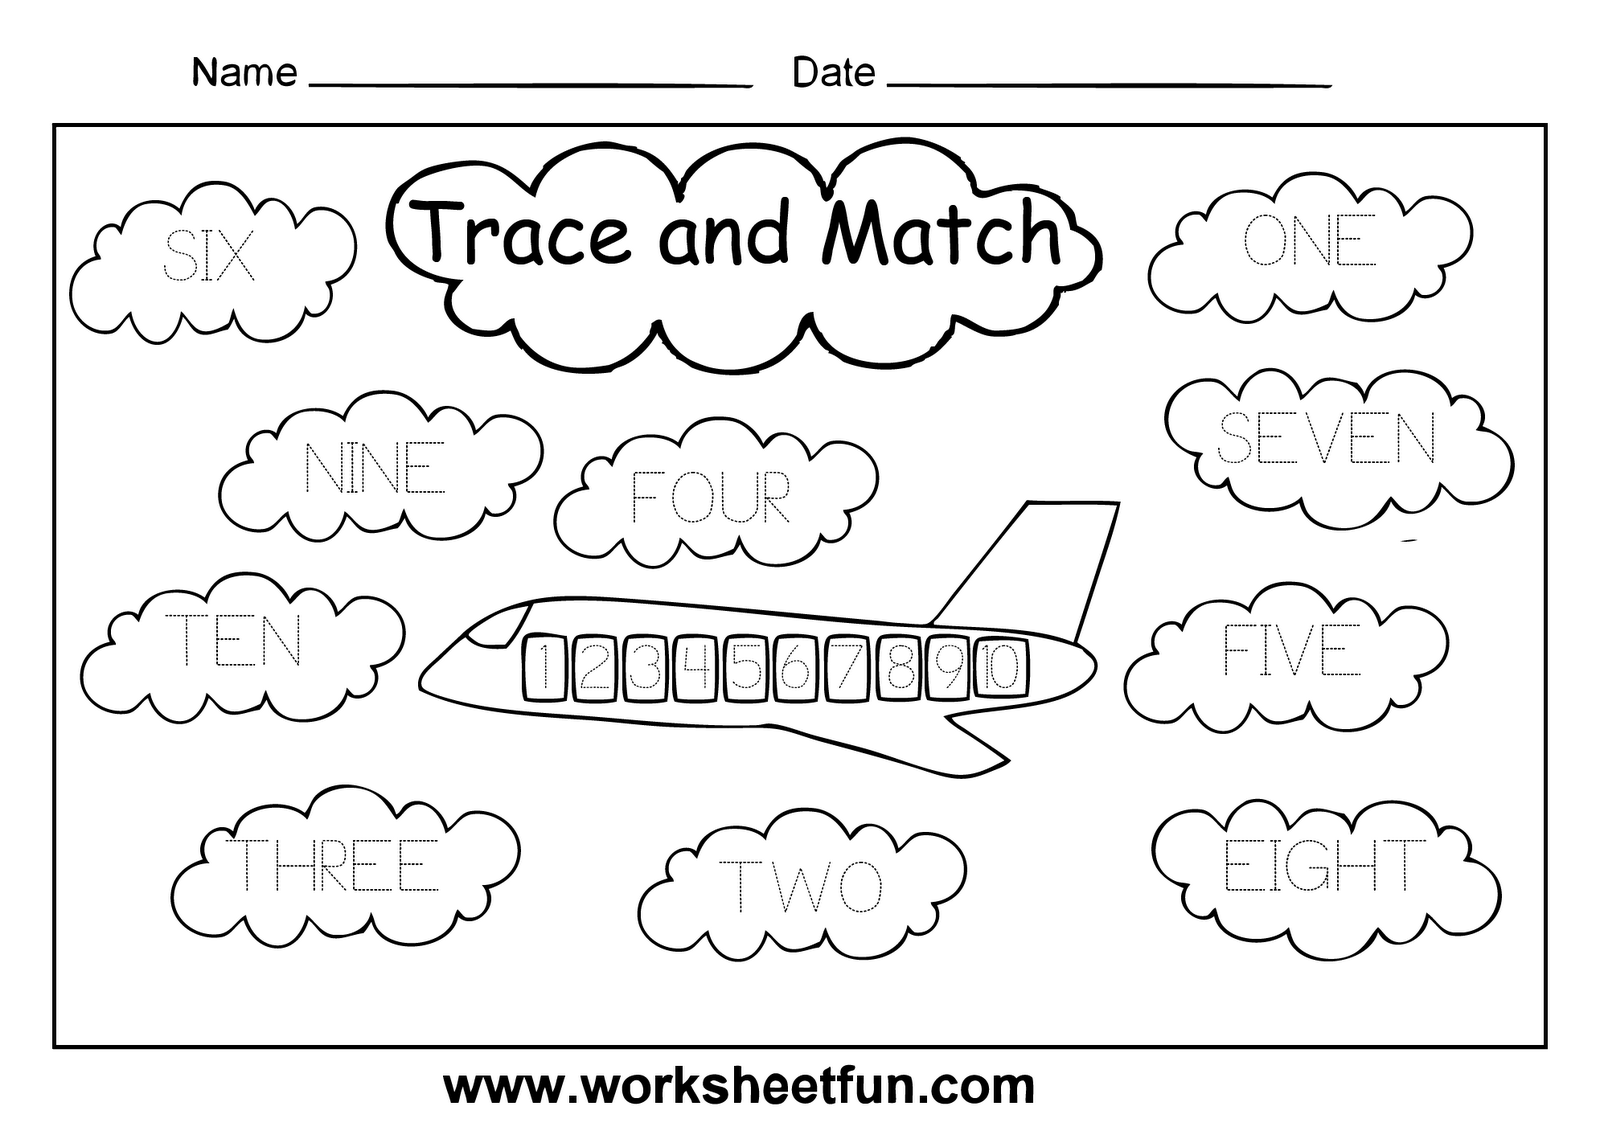 Proatmealus  Terrific Worksheet Numbers    Reocurent With Marvelous Worksheets On Insects Besides Dot To Dot Worksheets Preschool Furthermore Maths Worksheets Place Value With Charming Worksheets For Pre Primary Also Exponents Practice Worksheets In Addition Density Worksheets For Middle School And Connecting Dots Worksheets For Kindergarten As Well As Multiple Meaning Words Worksheet Th Grade Additionally Base Ten Models Worksheets From Reocurentcom With Proatmealus  Marvelous Worksheet Numbers    Reocurent With Charming Worksheets On Insects Besides Dot To Dot Worksheets Preschool Furthermore Maths Worksheets Place Value And Terrific Worksheets For Pre Primary Also Exponents Practice Worksheets In Addition Density Worksheets For Middle School From Reocurentcom